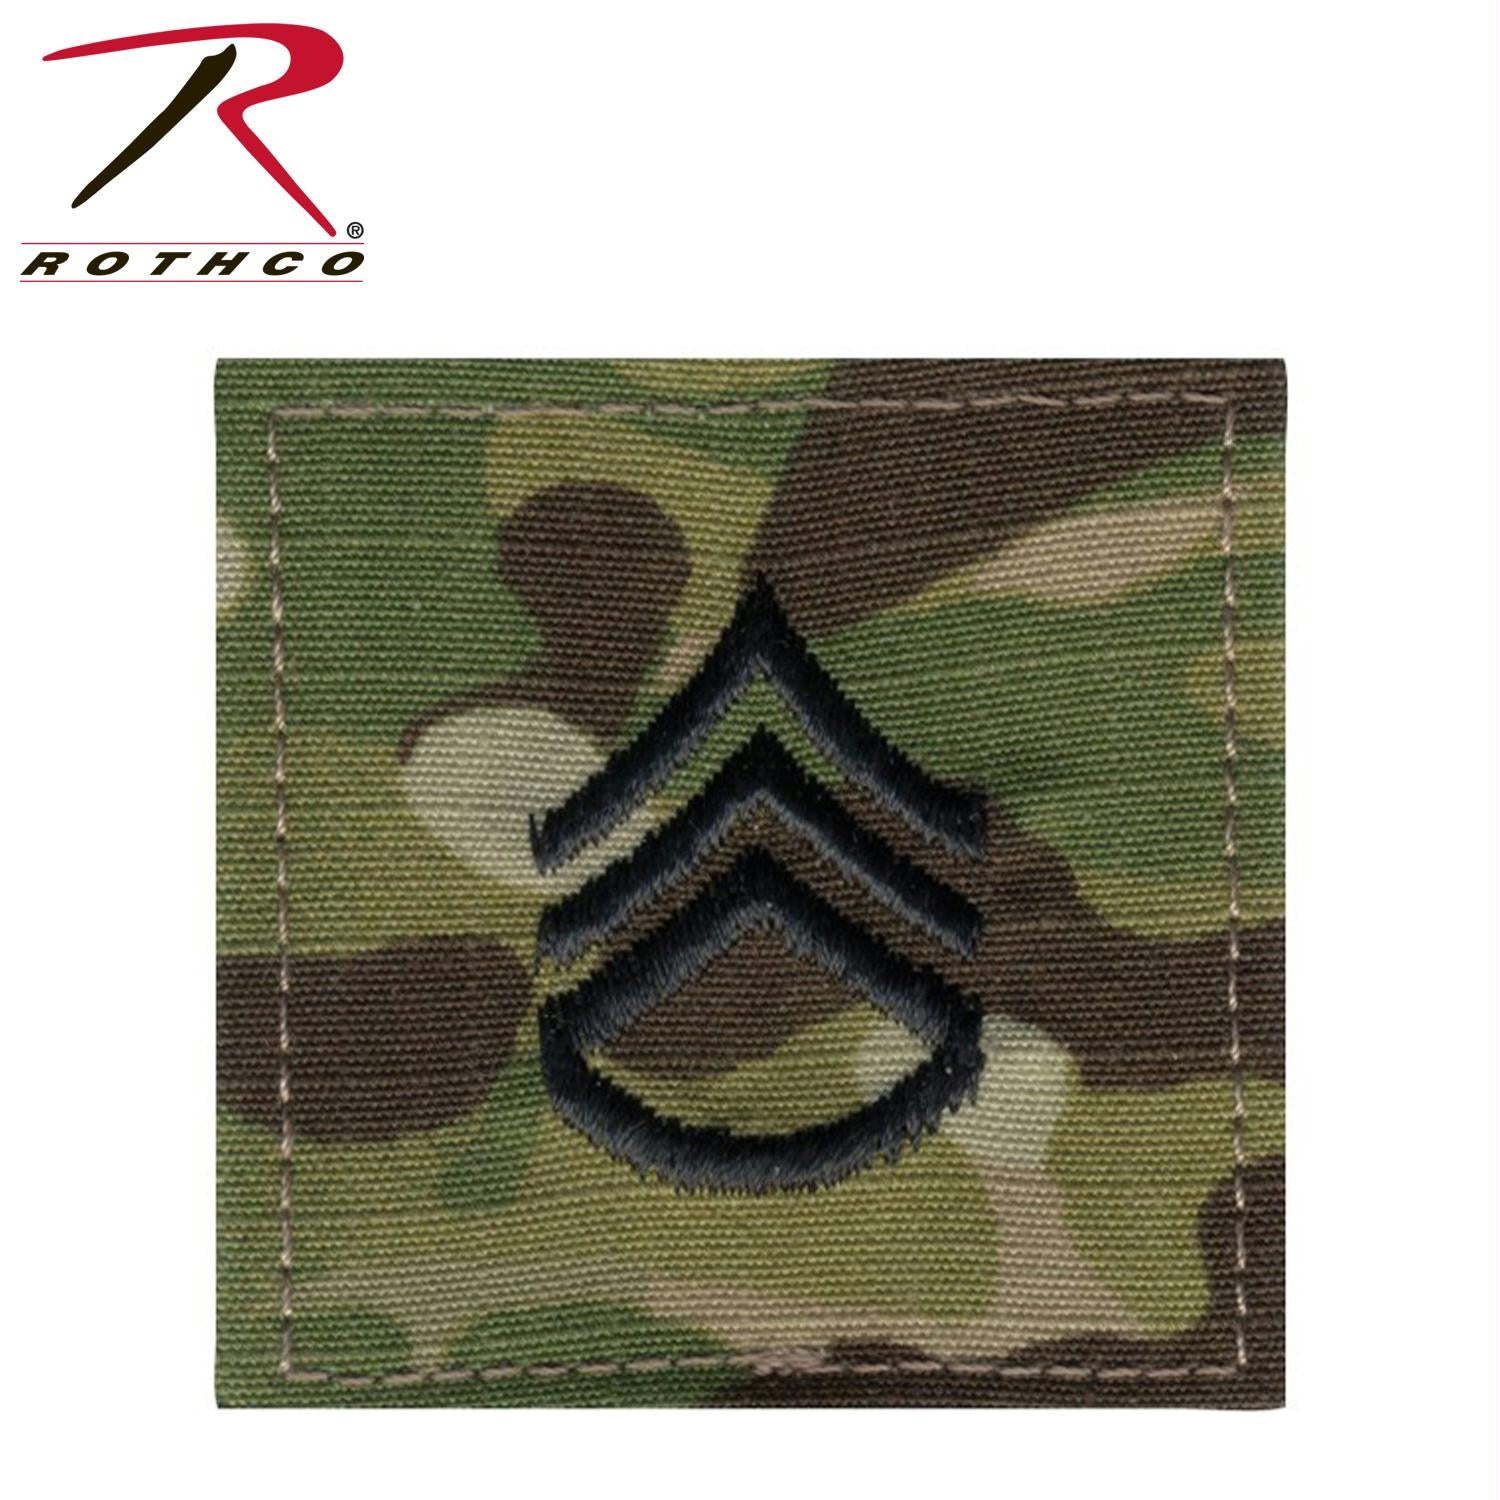 Rothco Official U.S. Made Embroidered Rank Insignia Staff Sergeant Patch - MultiCam